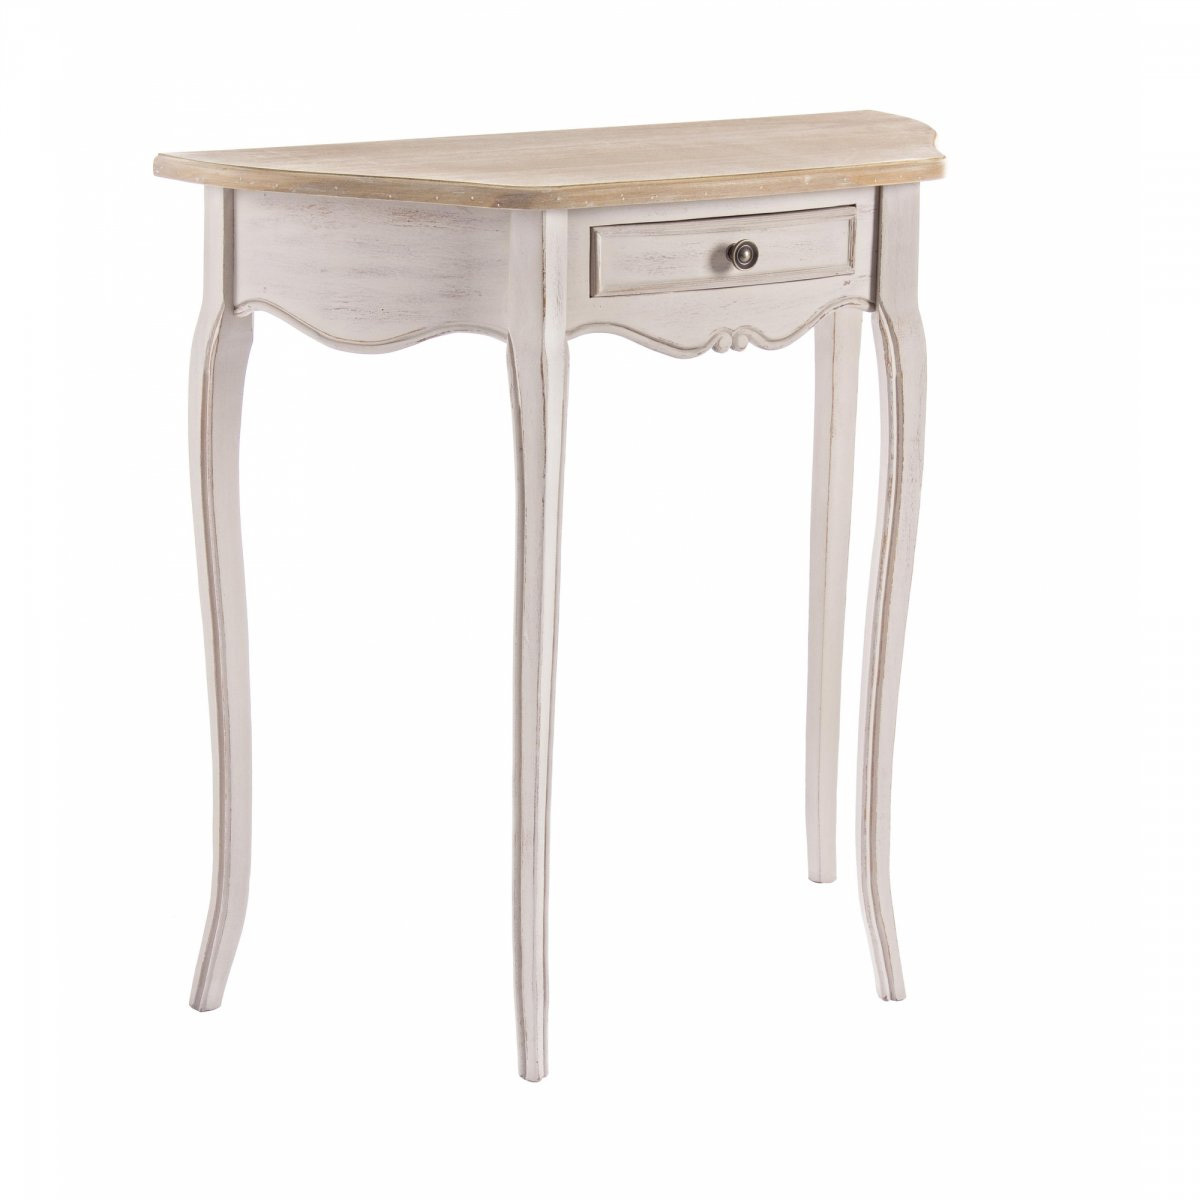 Photos 1: Bizzotto Fixed console in wood l. 80 x 35 with 1 drawer 0745807